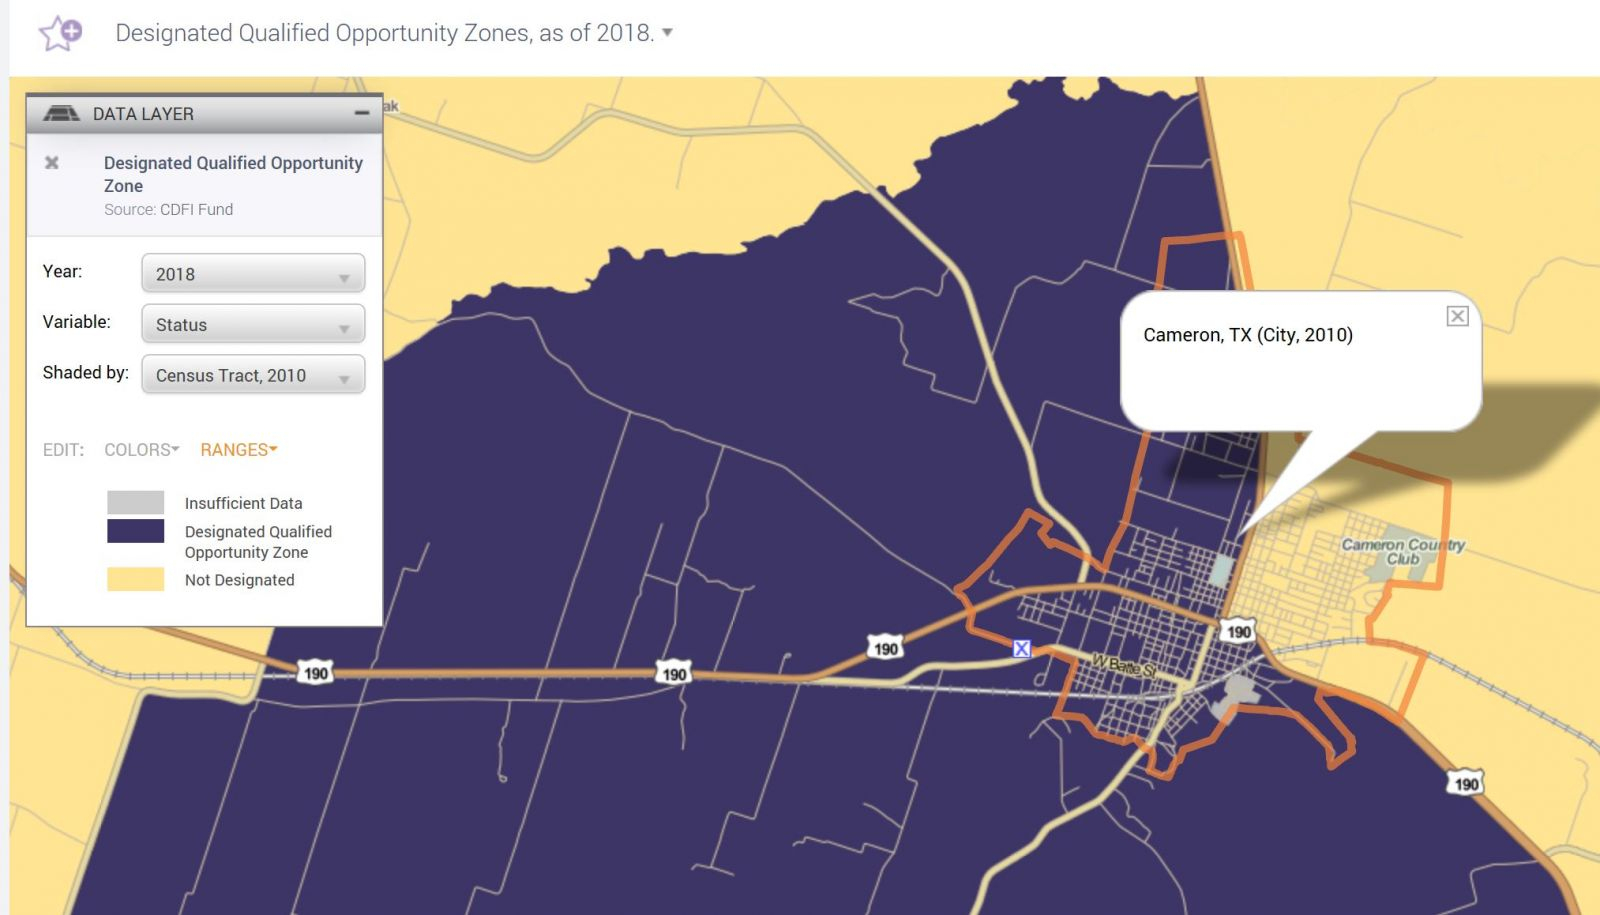 Cameron, Texas Opportunity Zone Coverage | Cameron Industrial Foundation - Texas Opportunity Zone Map